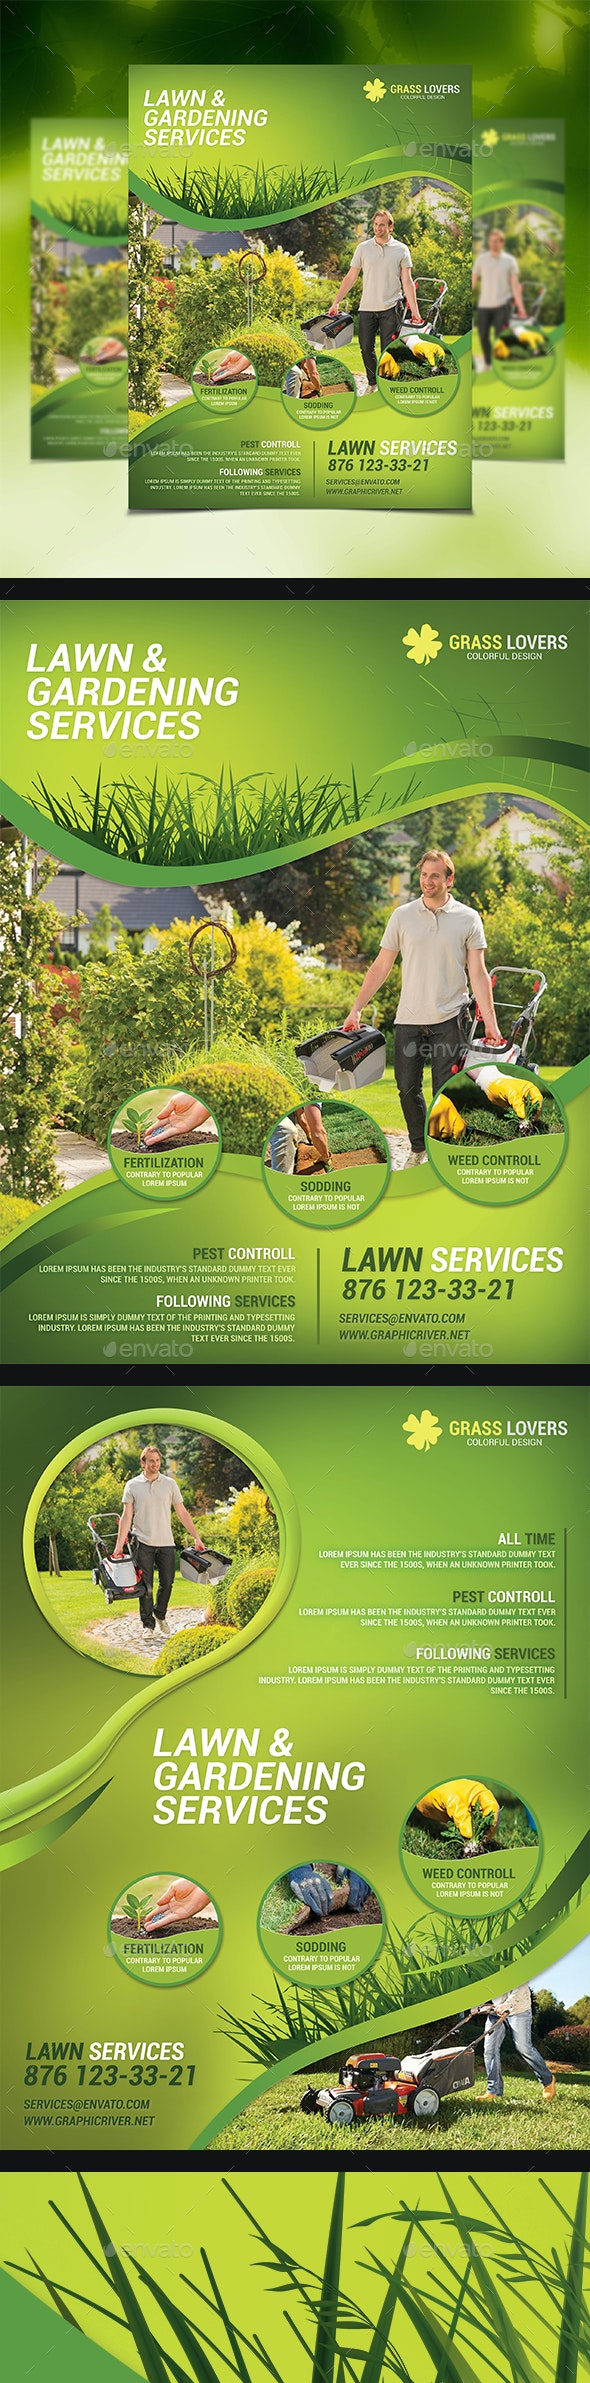 Lawn Services Flyer Templates - Corporate Flyers